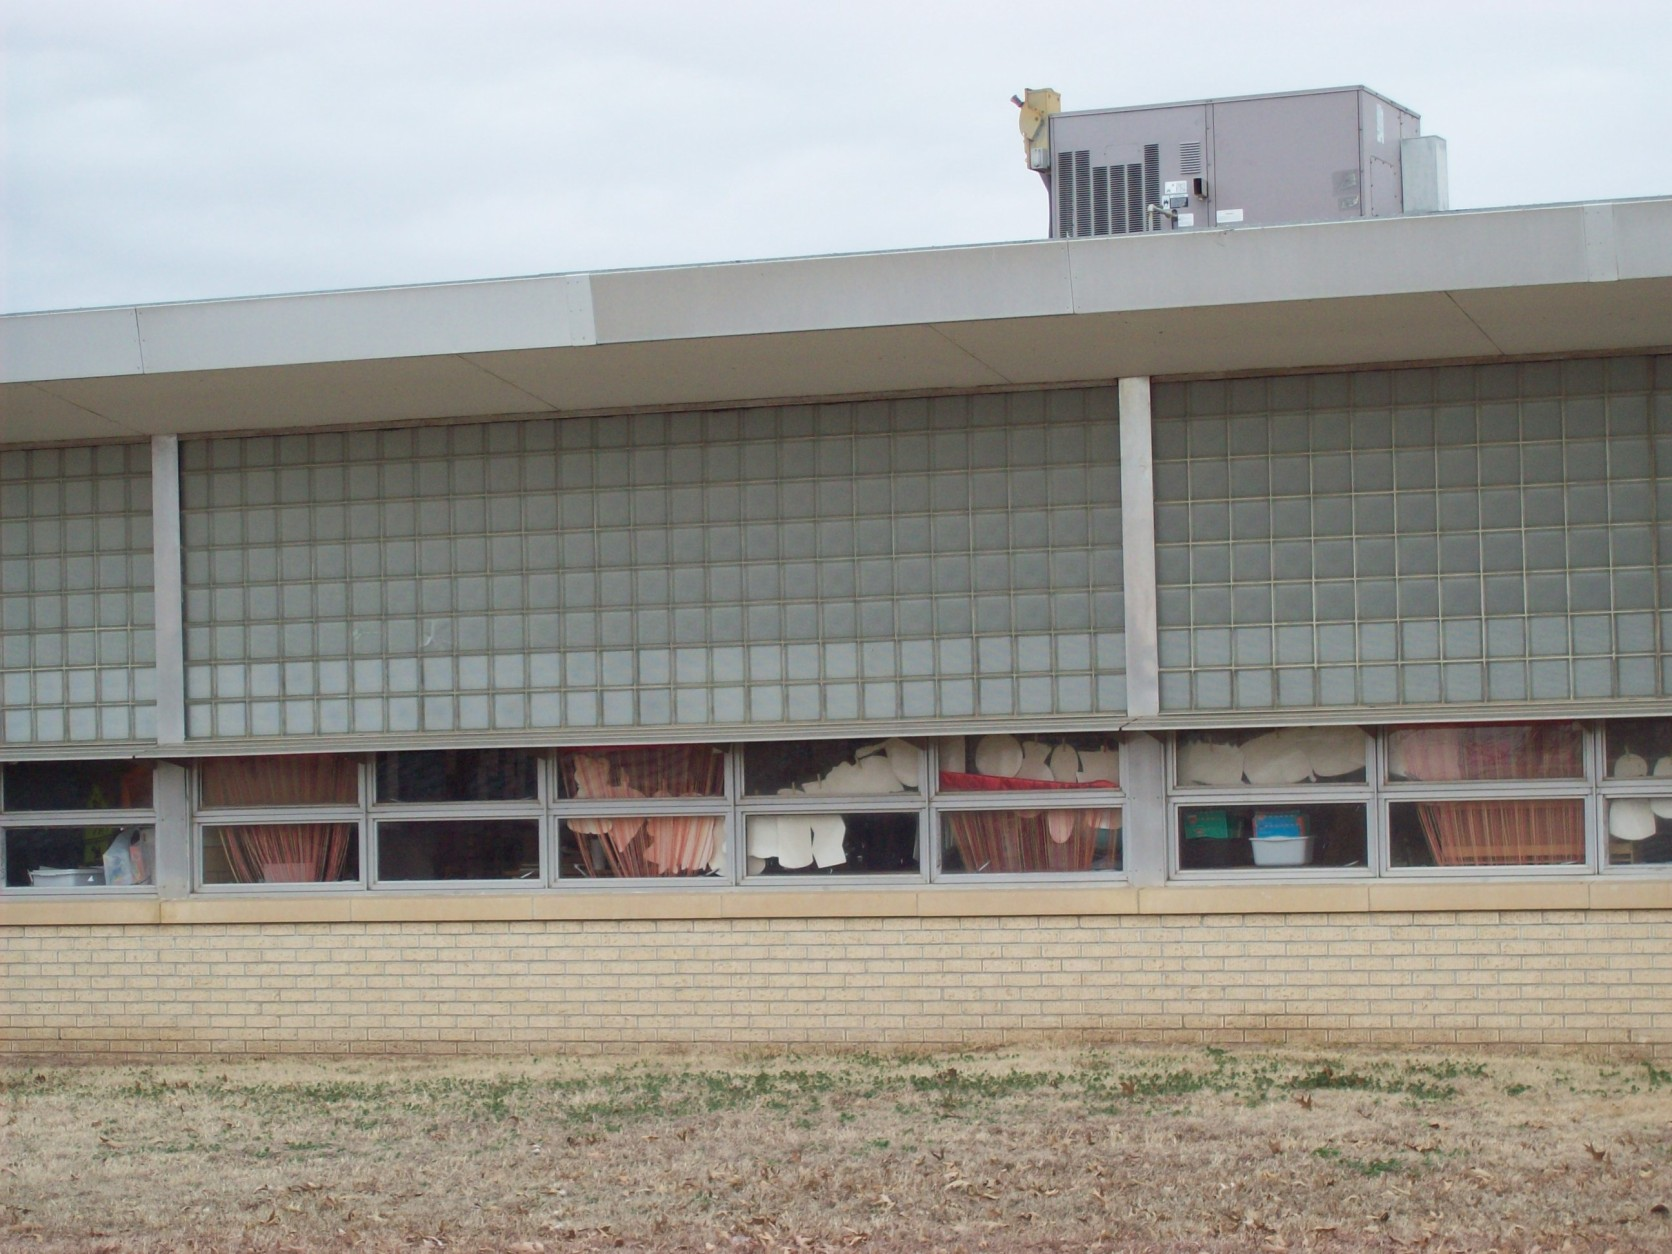 Tony Goetz Elementary before the new blinds were installed (Muskogee, 2010)